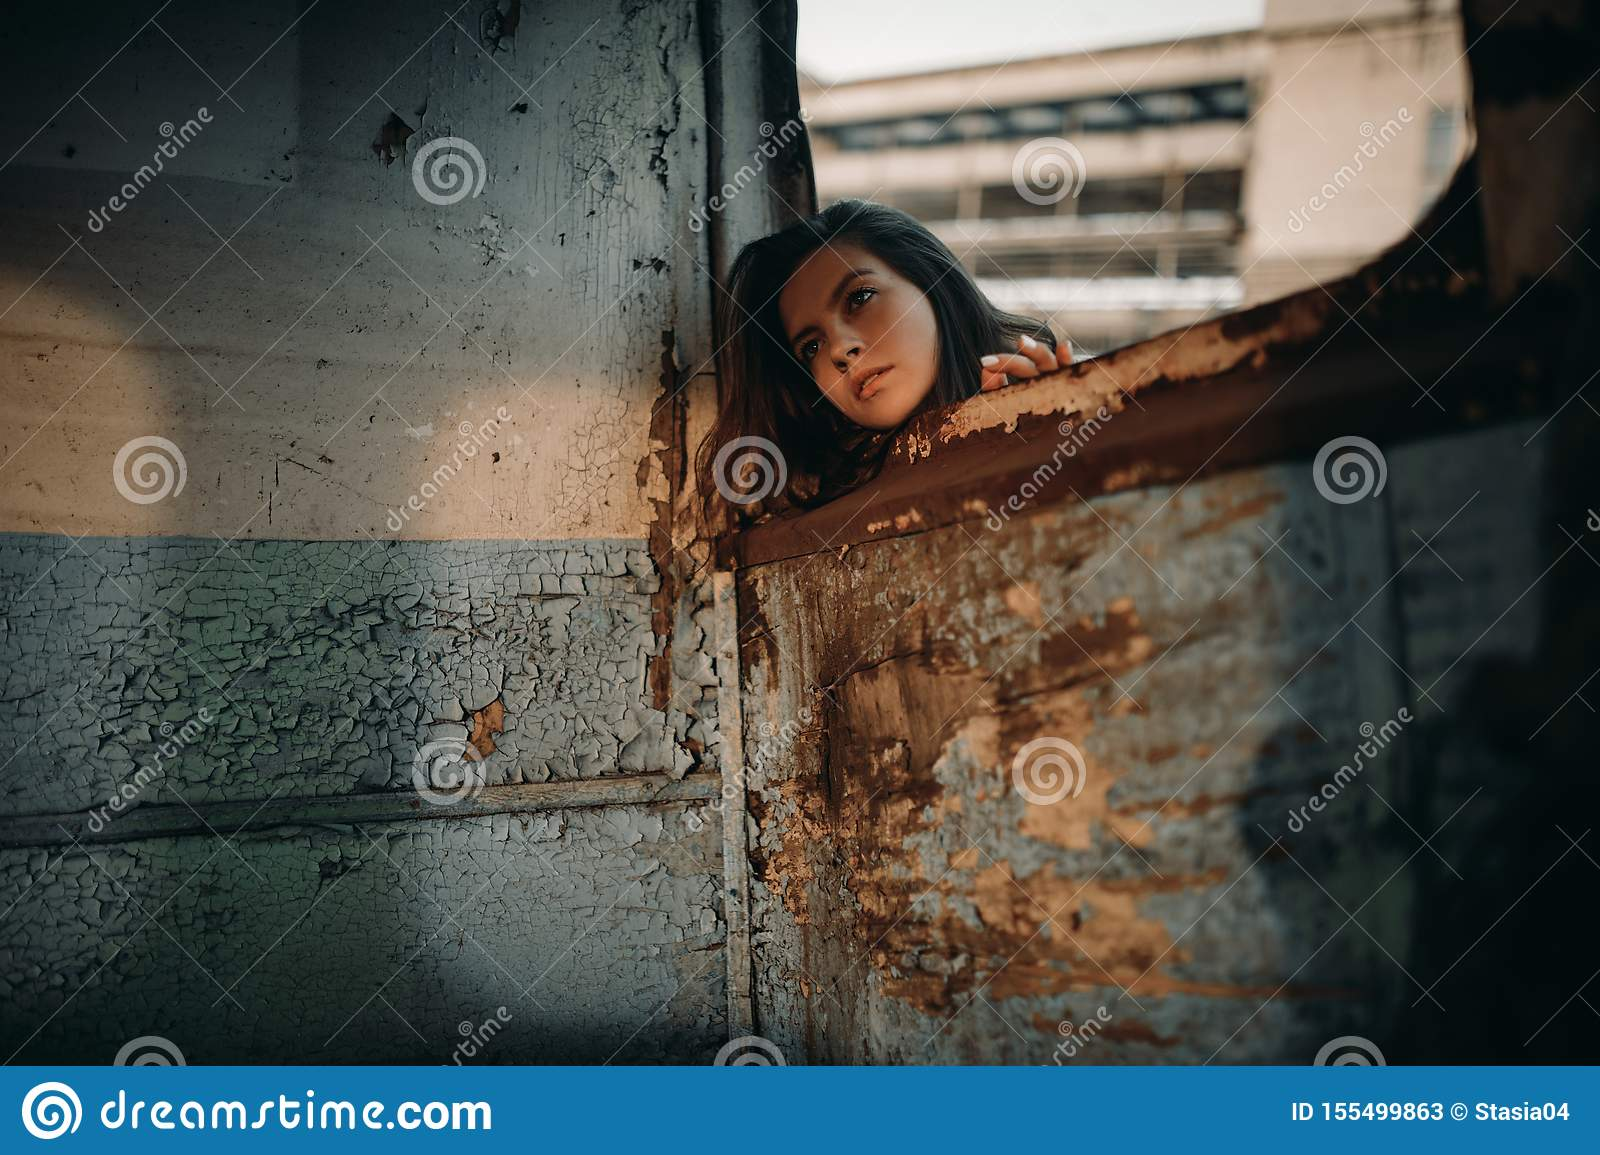 Woman looks out window of abandoned ship